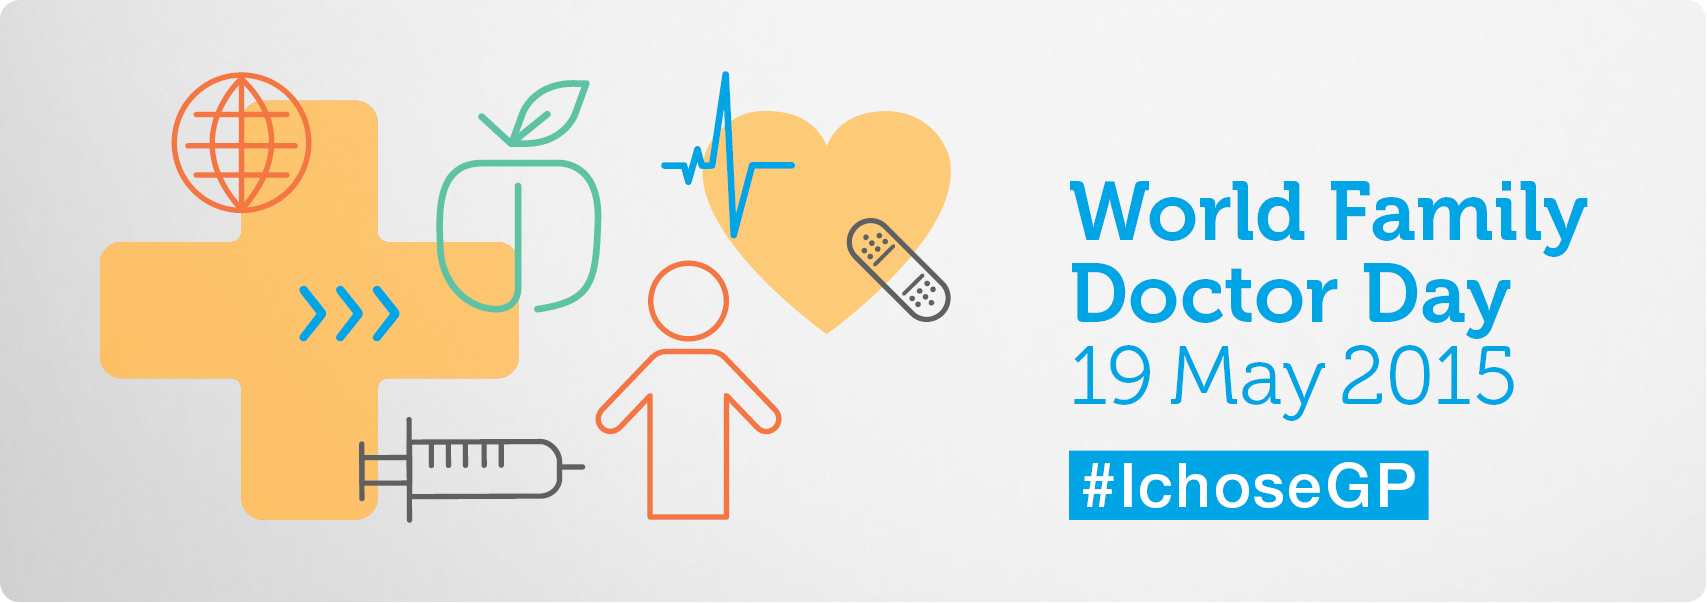 World Family Doctor Day 2015